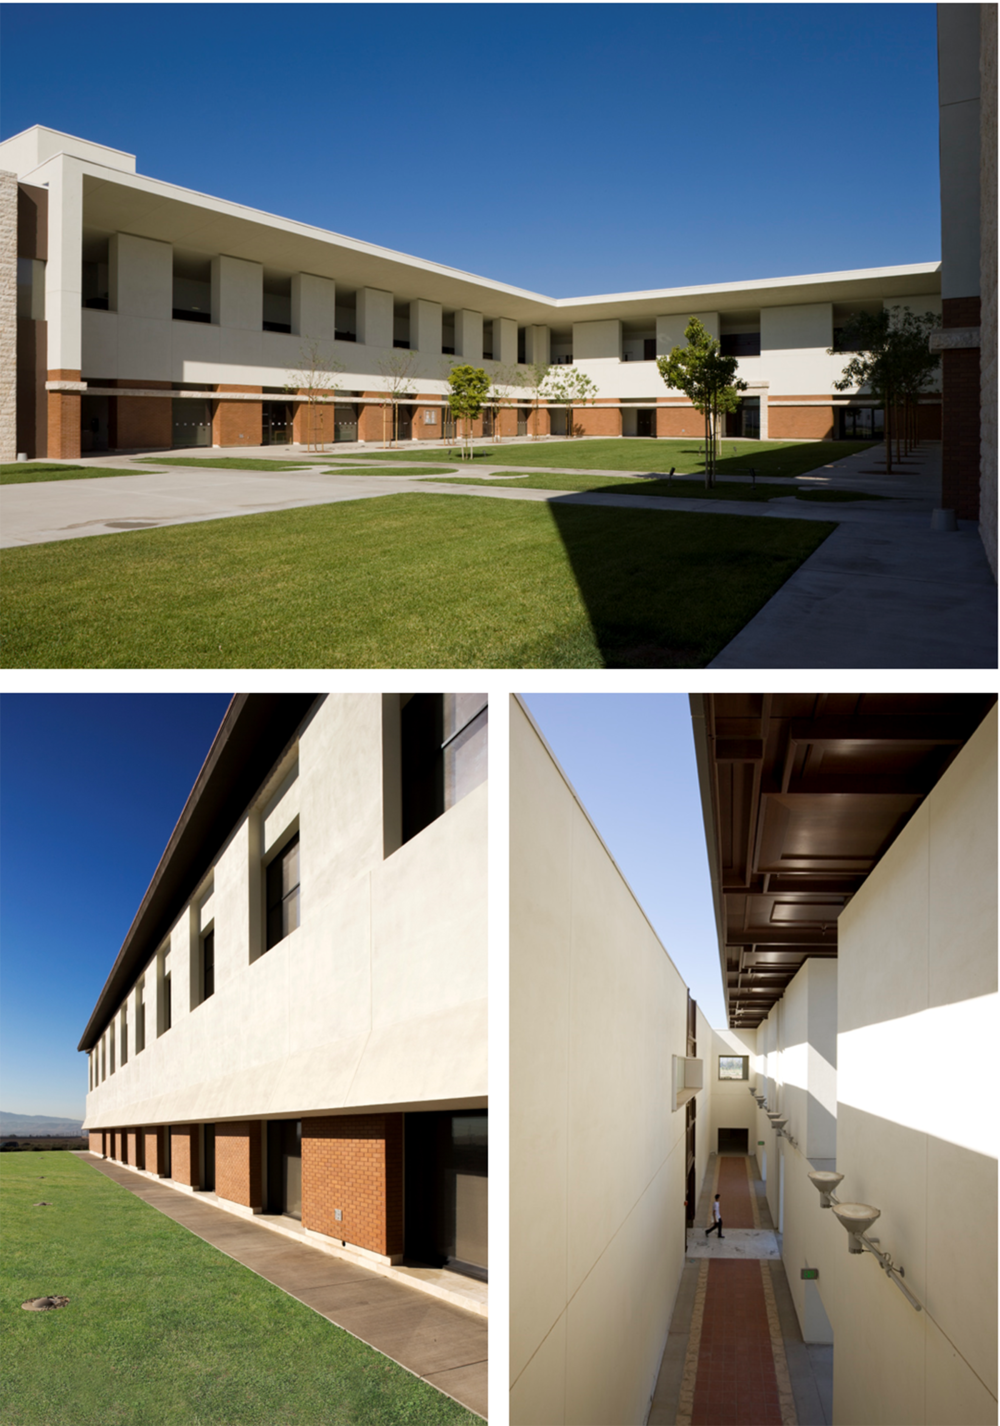 ESSENTIAL CAMPUS This 60,000 SF building was the first built for a new campus on a 100-acre former cow pasture in the San Gabriel valley in southern California. Its purpose is to create a microcosm of a college campus in service to the college's first five thousand students.